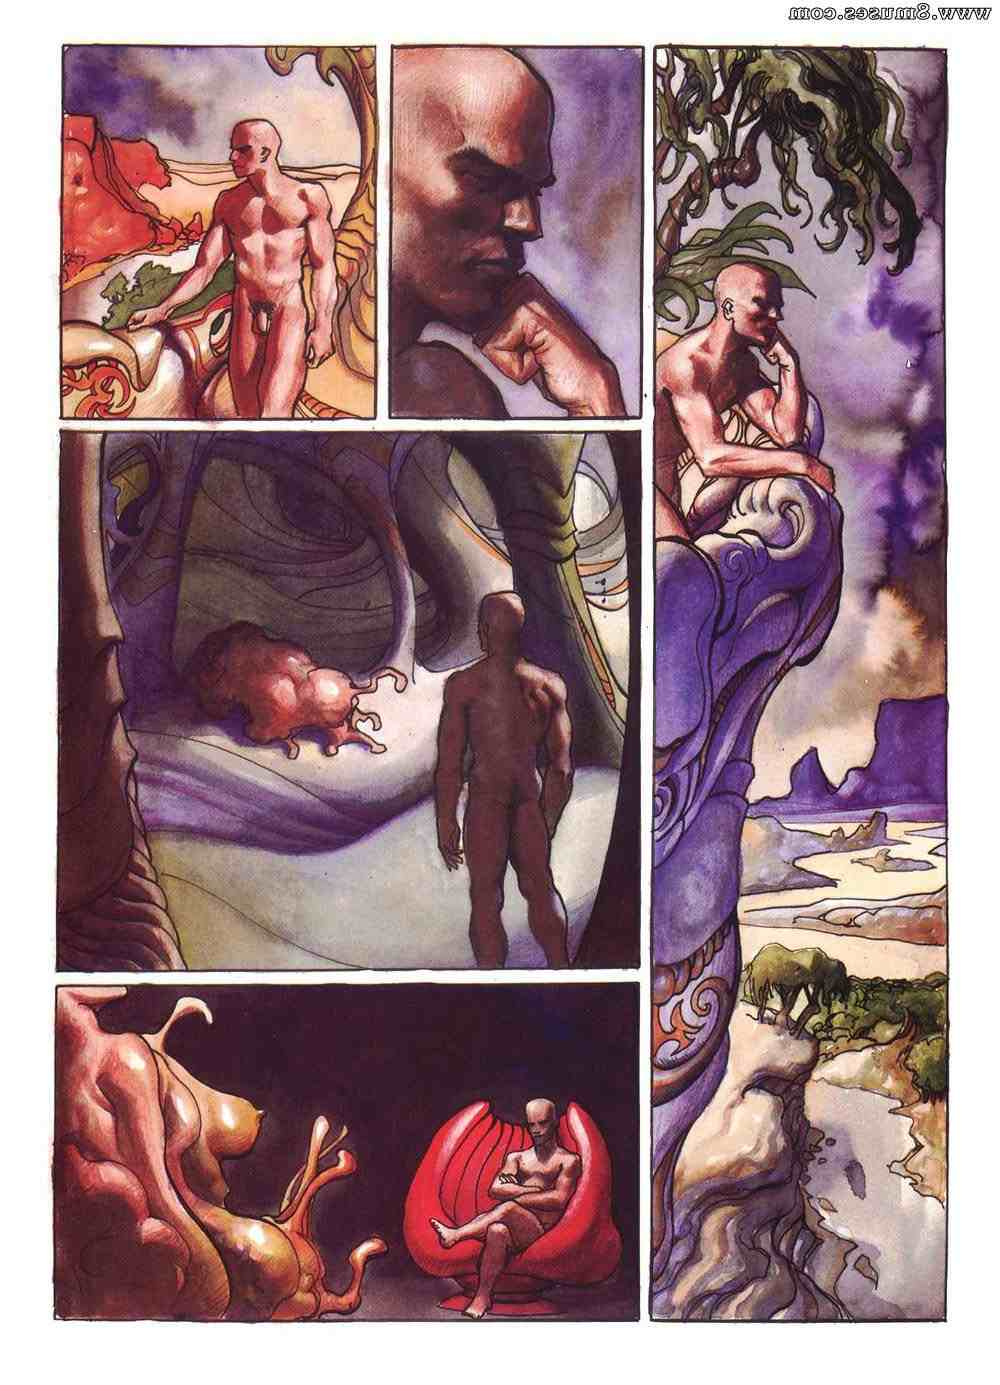 Various-Authors/Starzo/Mike-Mercury Mike_Mercury__8muses_-_Sex_and_Porn_Comics_41.jpg